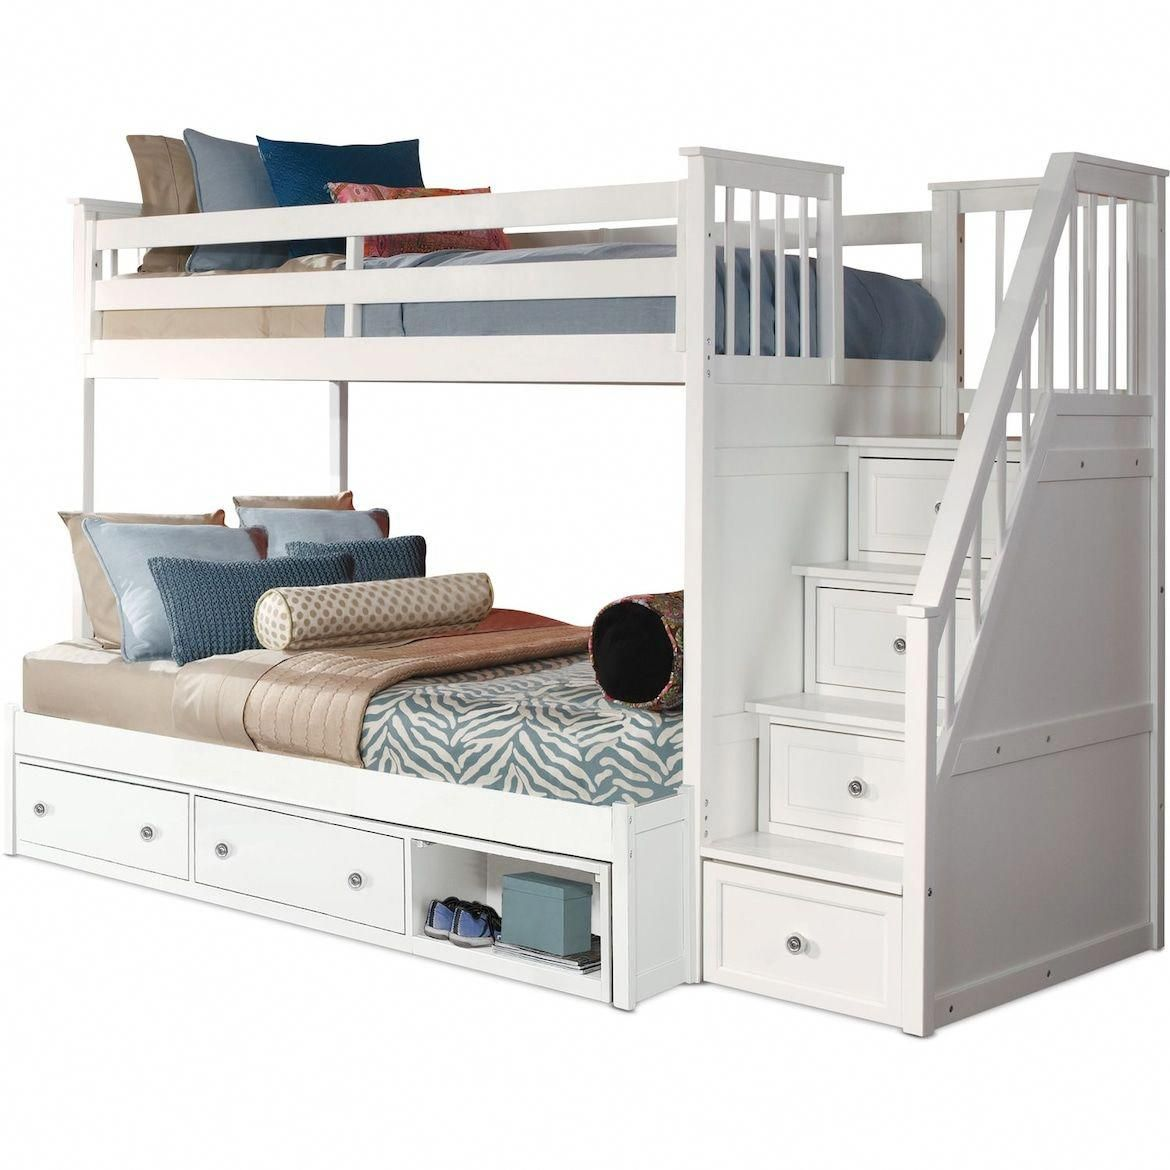 Best Pin On Fabulous Ideas Of Different Bunk Beds 400 x 300